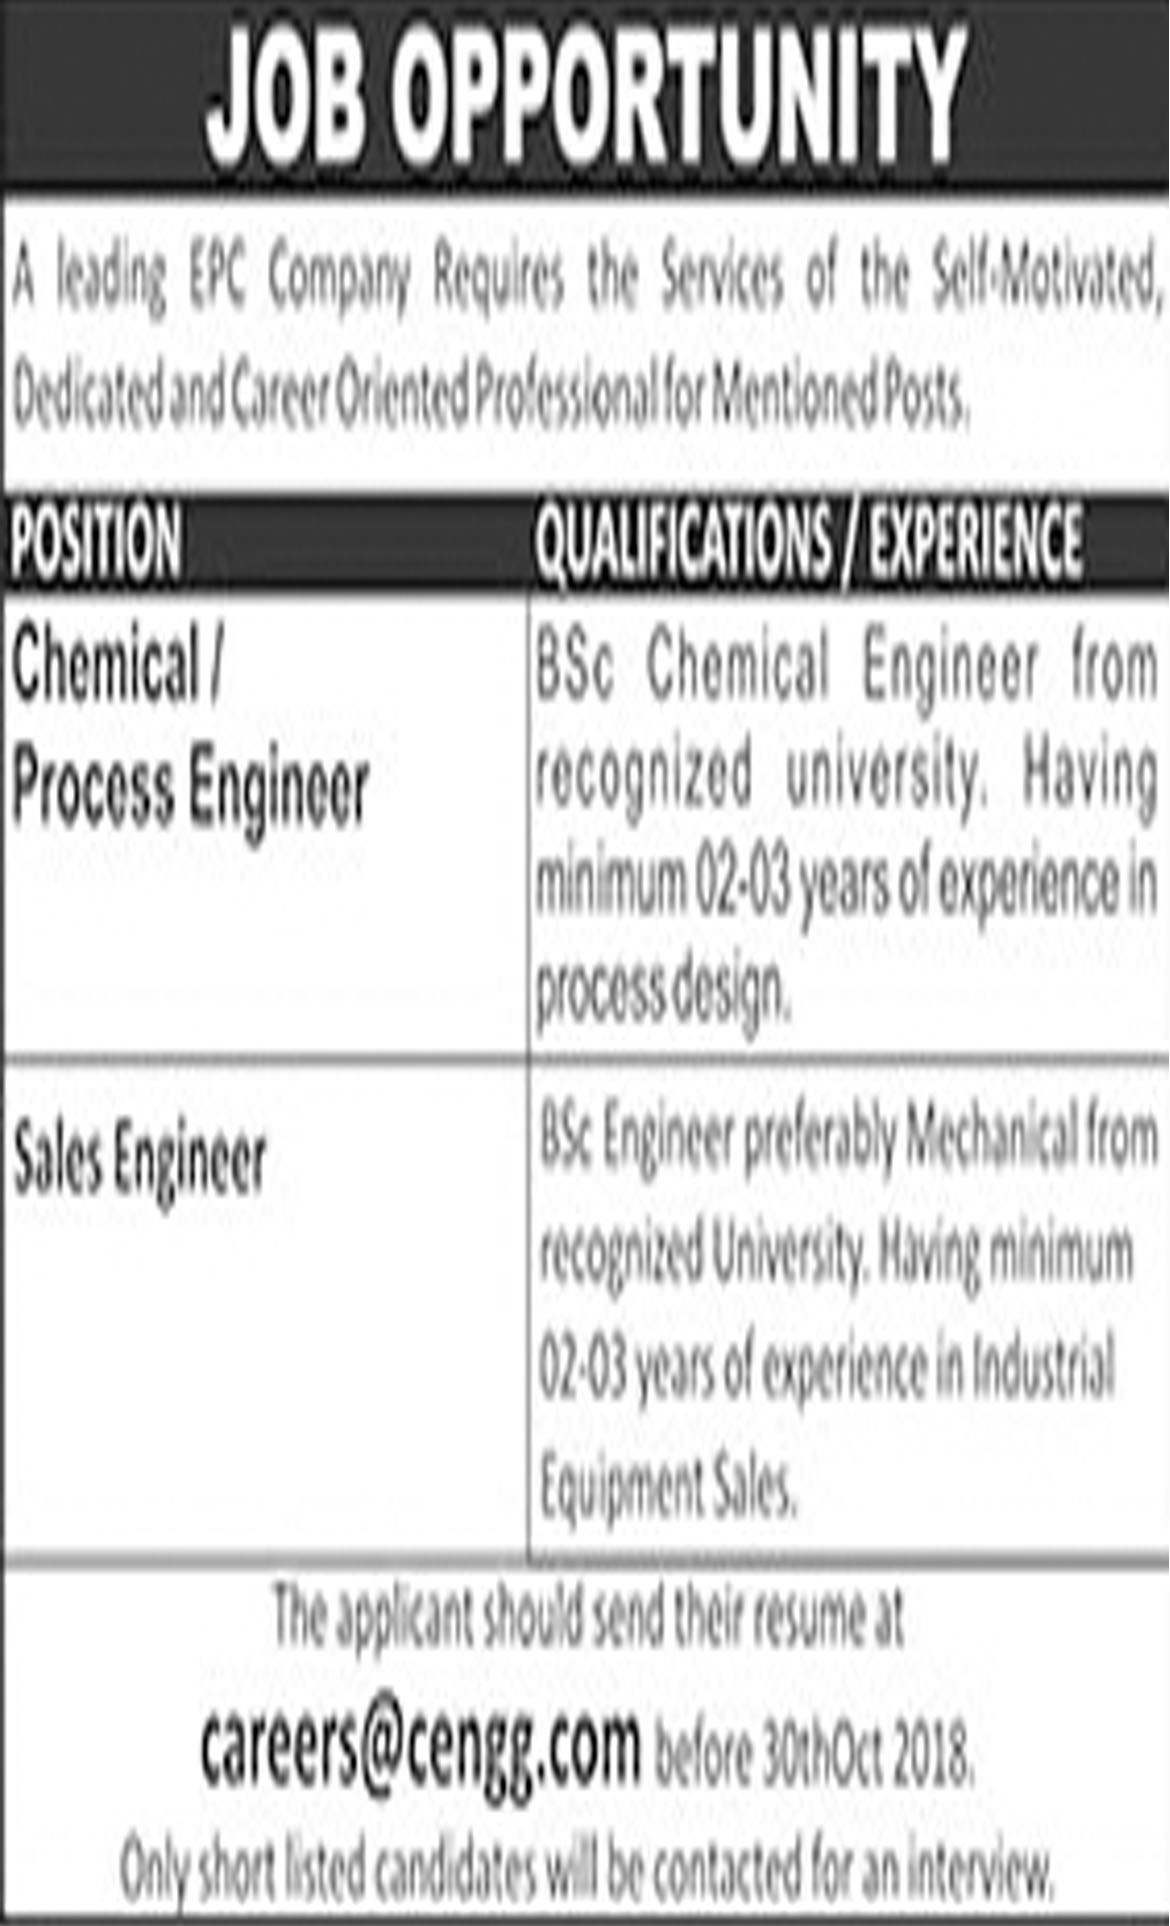 Jobs In Chemical Process Engineer, Sales Engineer  16 Oct 2018